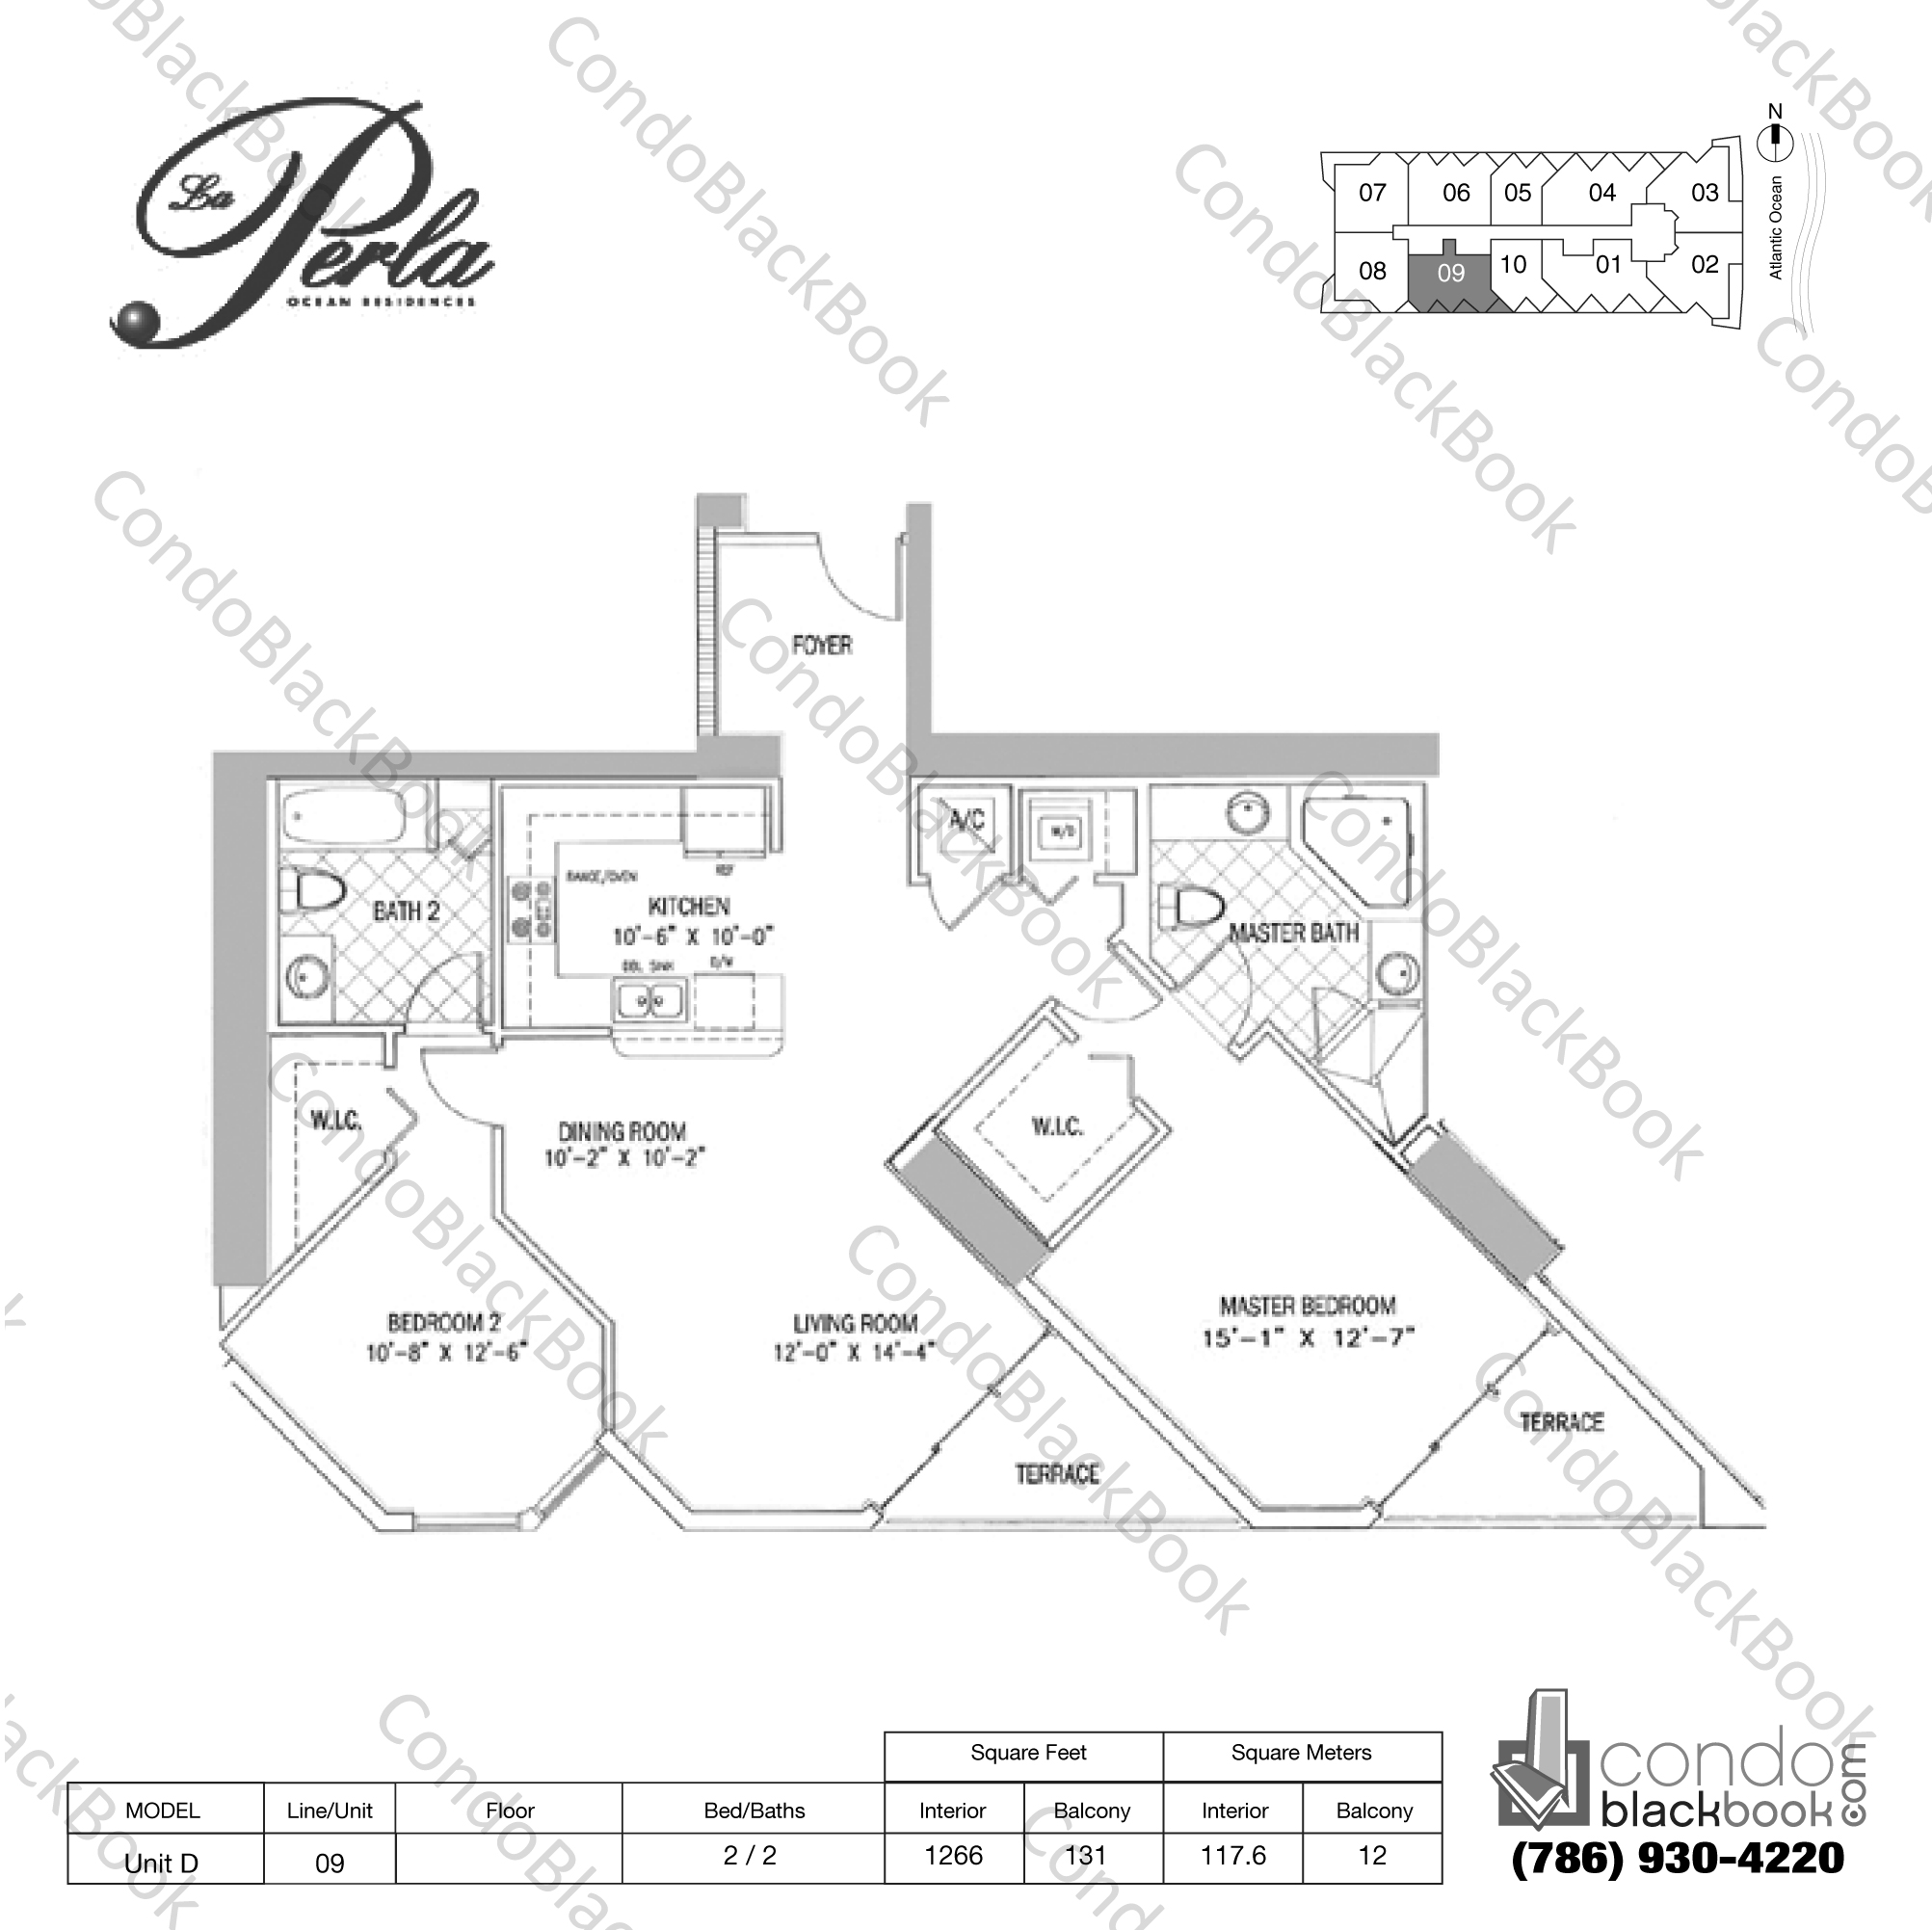 Floor plan for La Perla Sunny Isles Beach, model Unit D, line 09, 2 / 2 bedrooms, 1266 sq ft